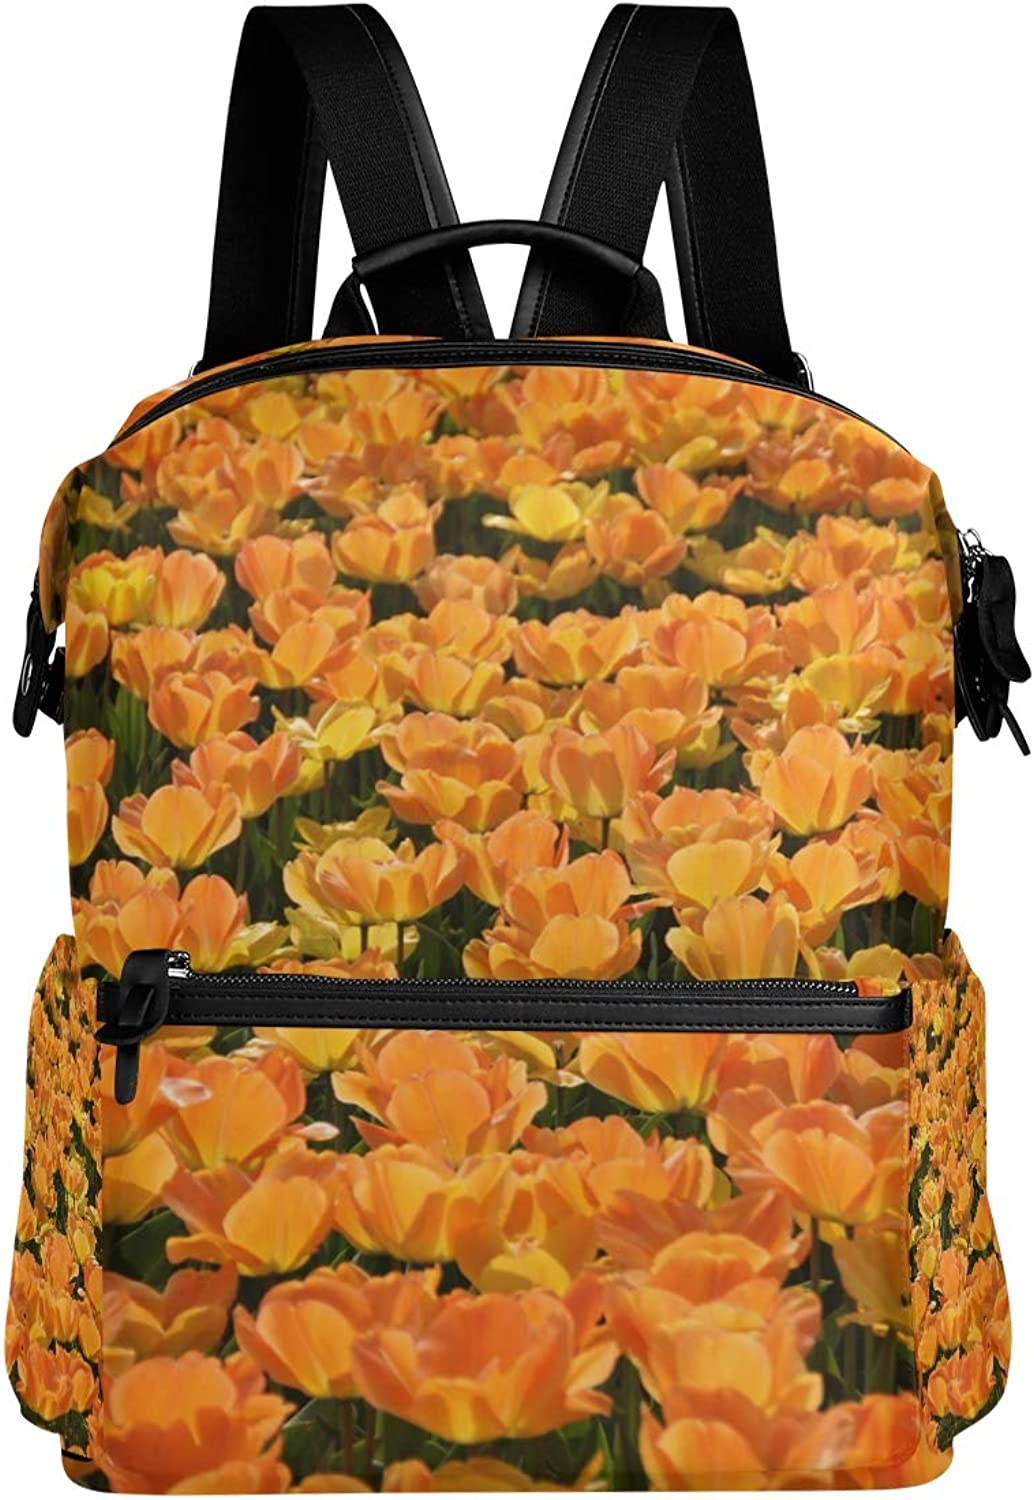 MONTOJ Amazing Beautiful Tulips Leather Travel Bag Campus Backpack